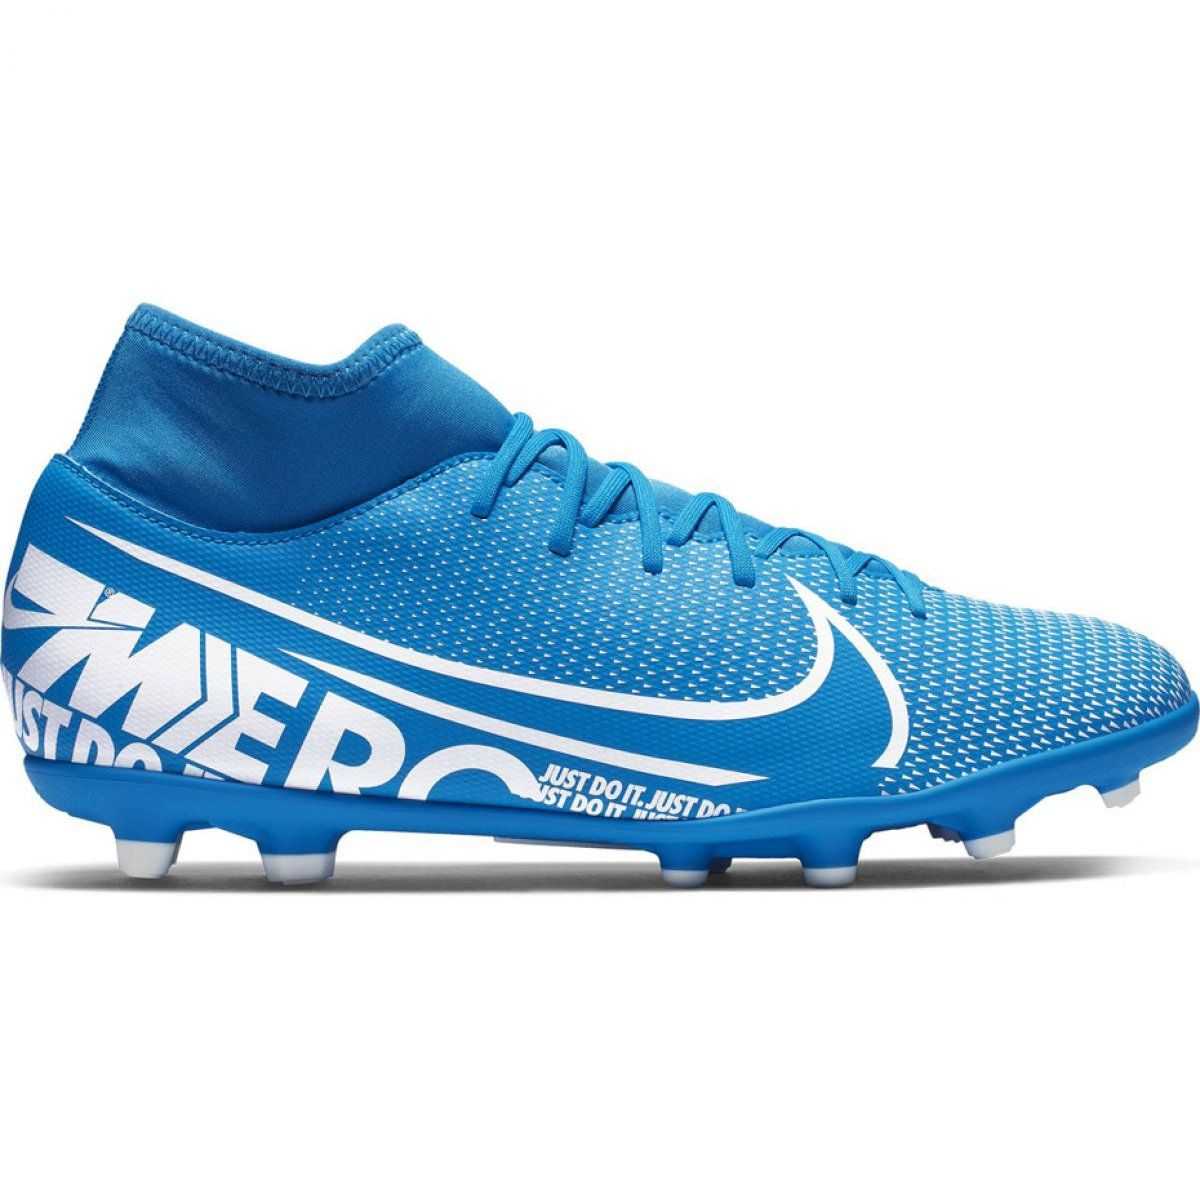 Football Shoes Nike Mercurial Superfly 7 Club Fg Mg M At7949 414 Blue Blue Football Shoes Superfly Football Boots